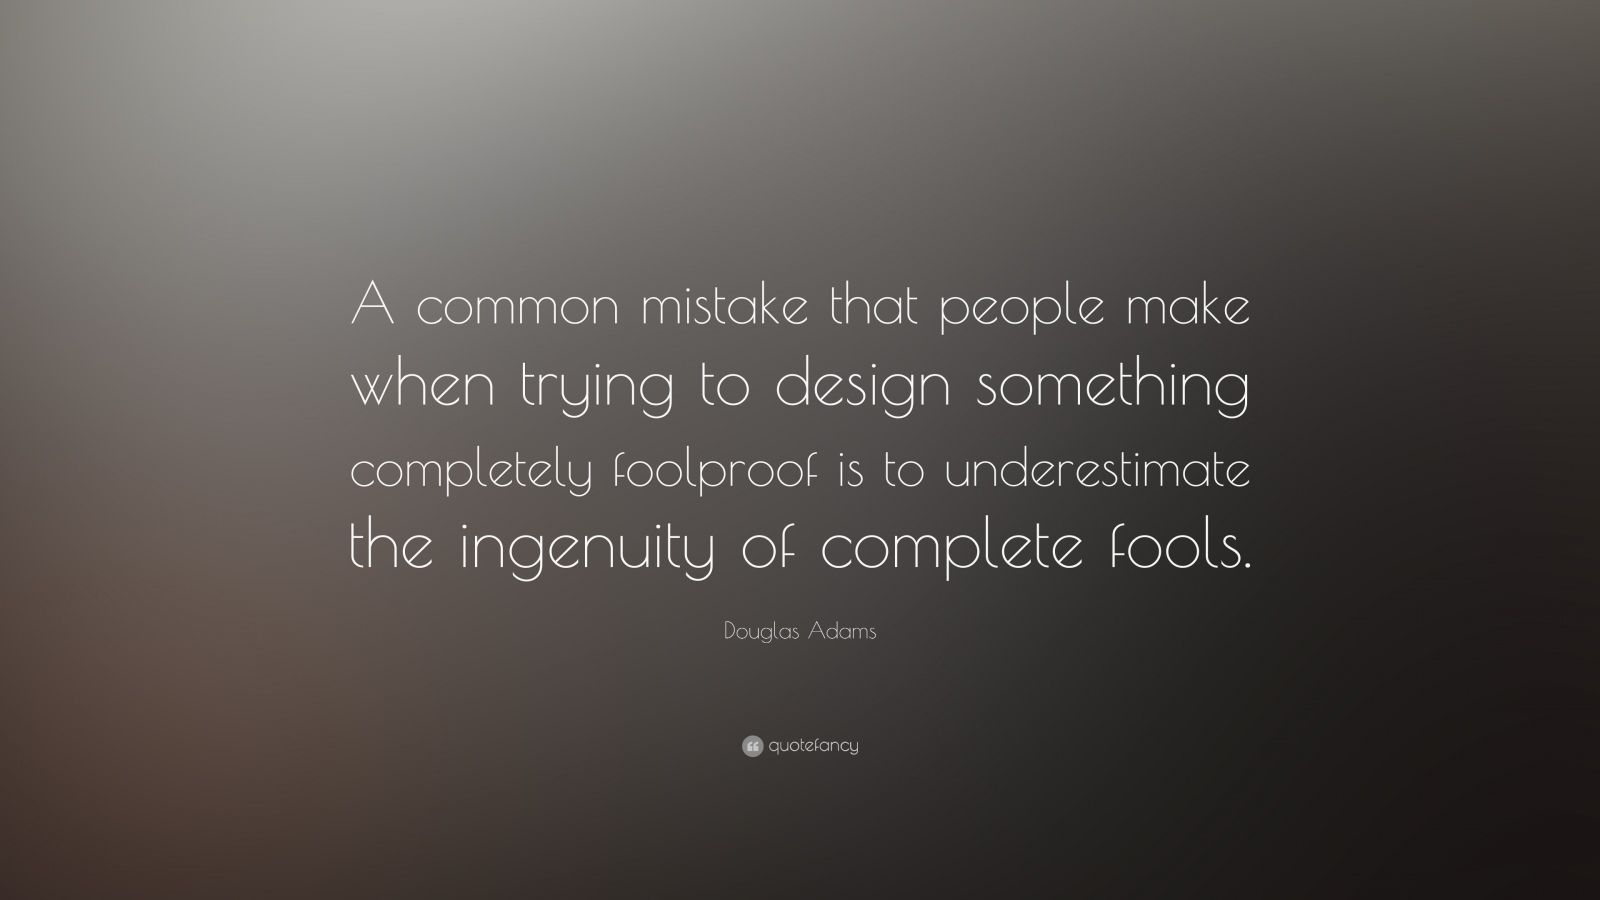 """Douglas Adams Quote: """"A common mistake that people make when trying to design something completely foolproof is to underestimate the ingenuity of complete fools."""""""